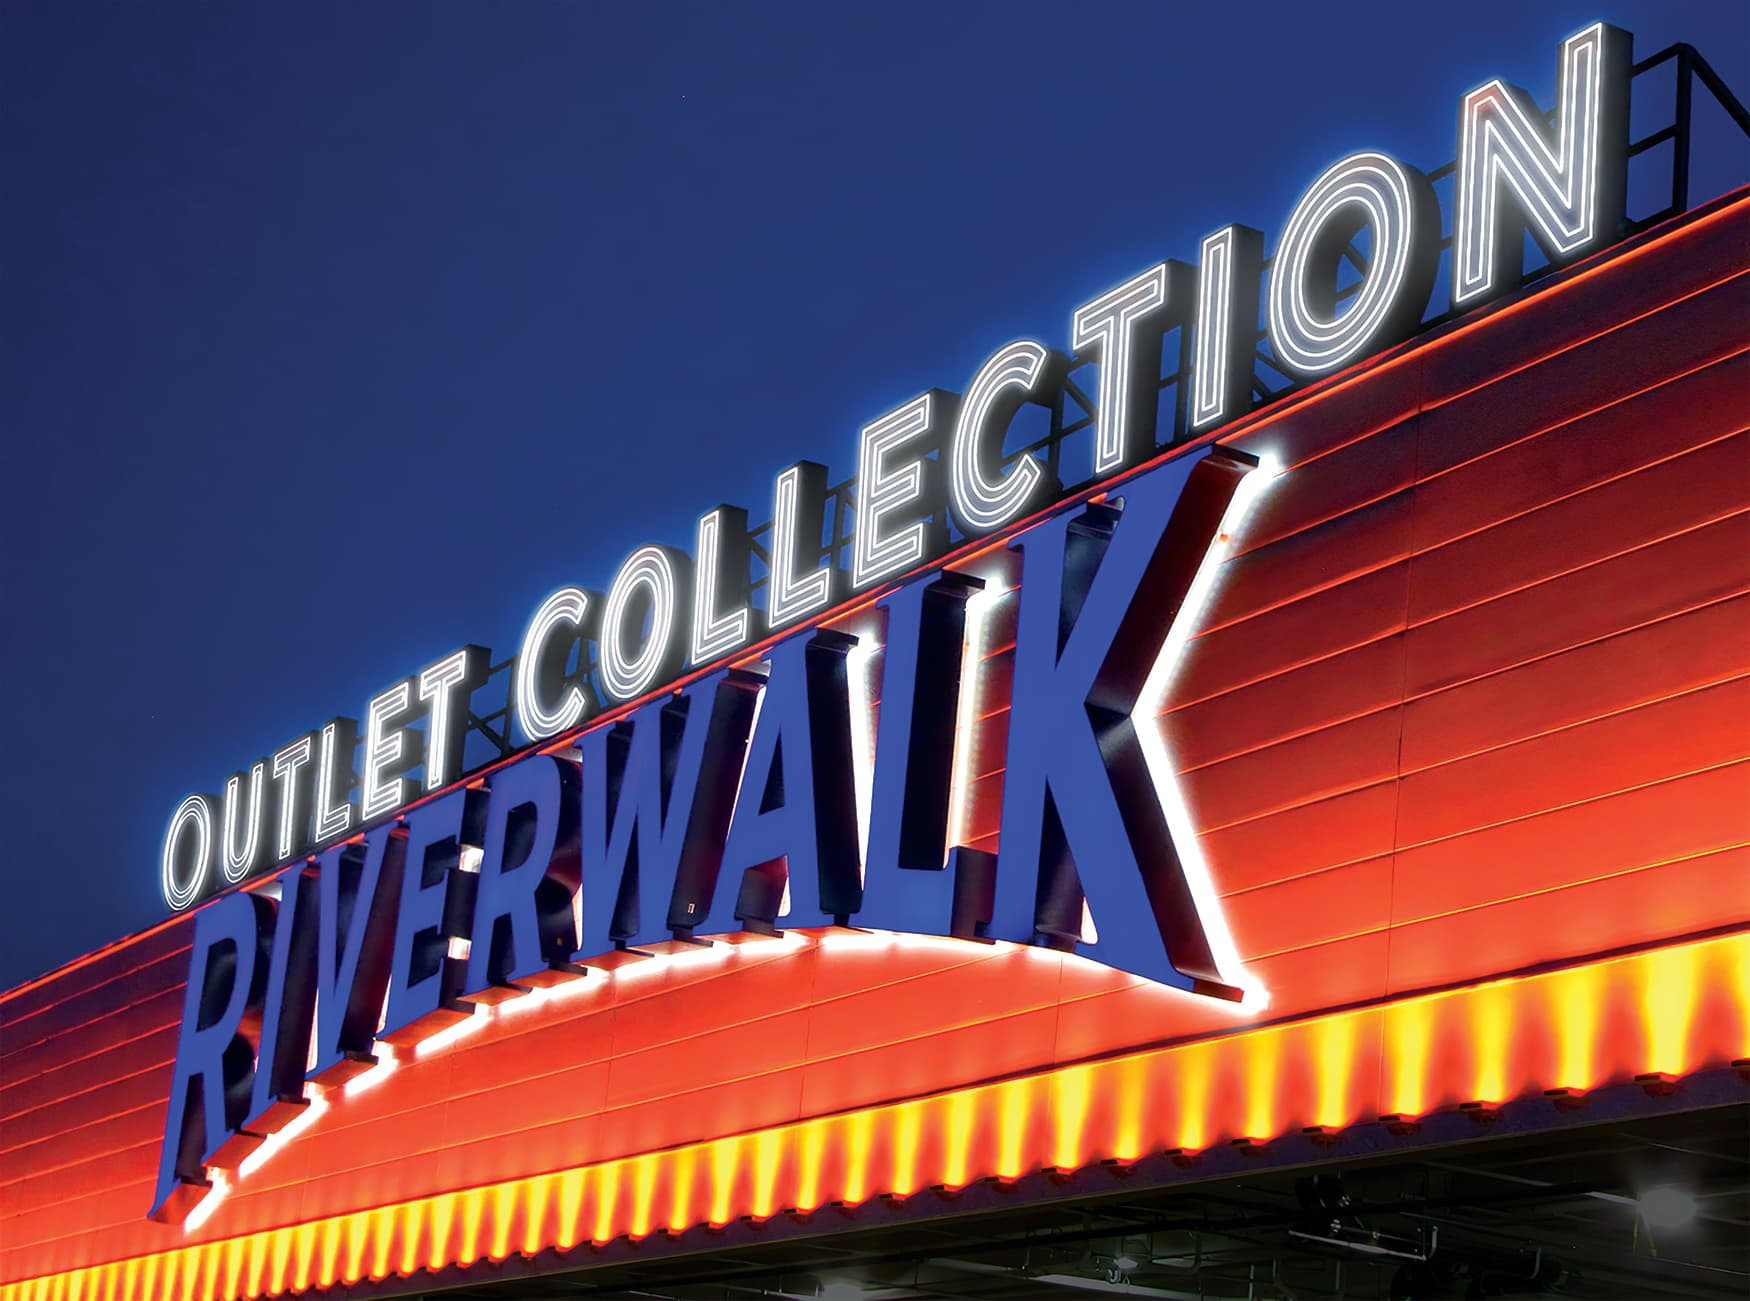 The Outlet Collection at Riverwalk. Face-Illuminated Rooftop Signage. Project Identity Signage.